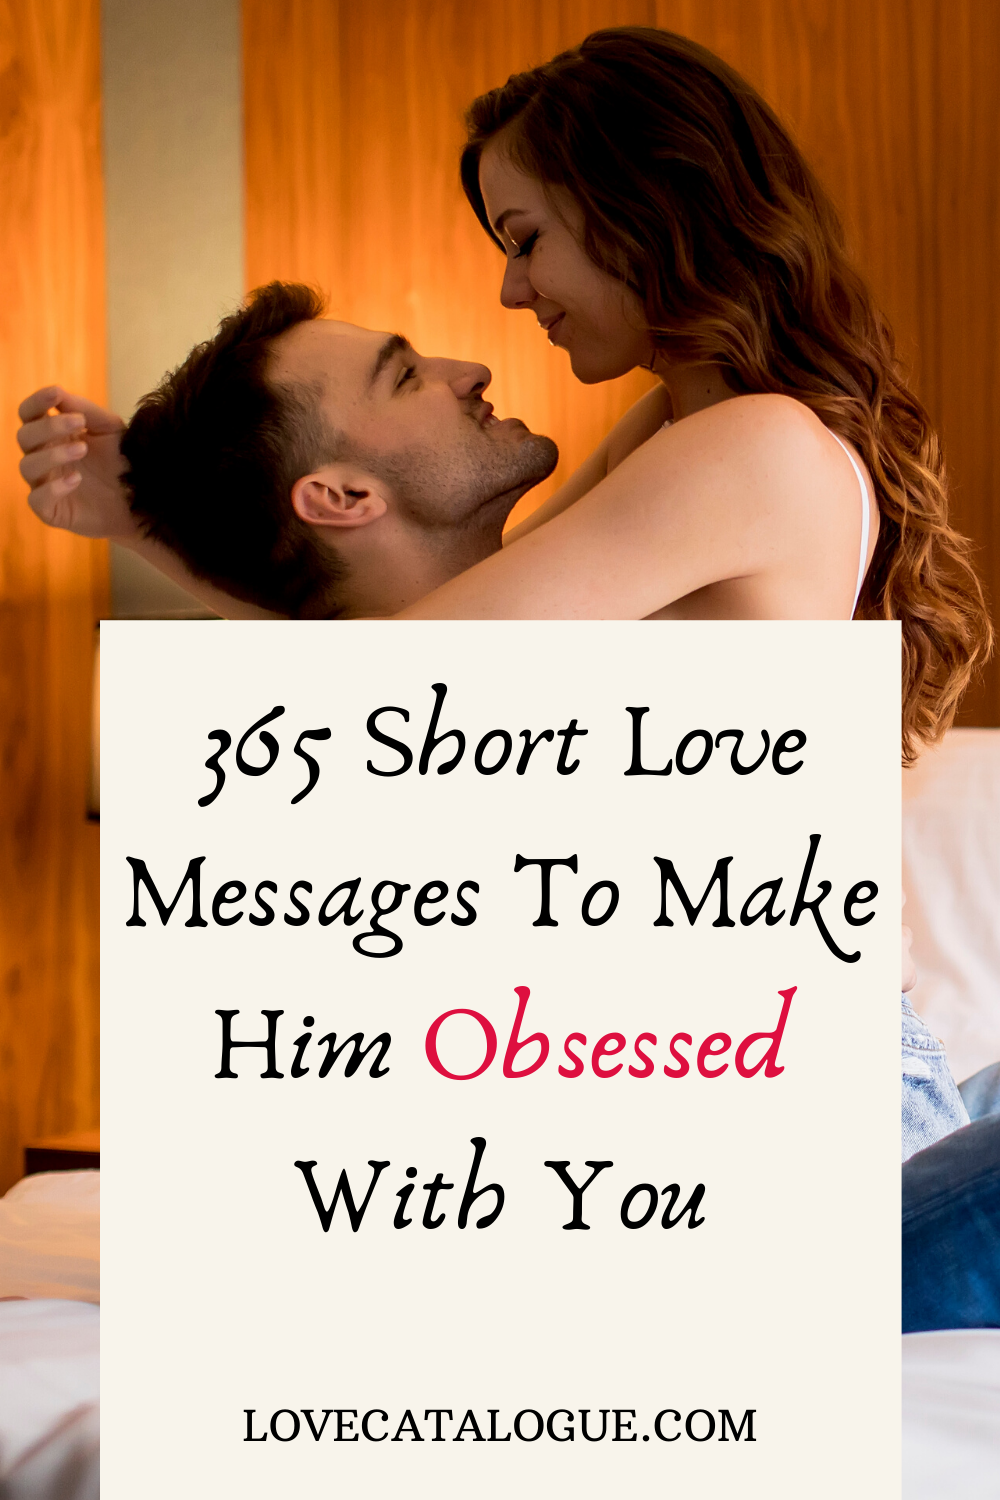 365 Short love messages to make him obsessed with you